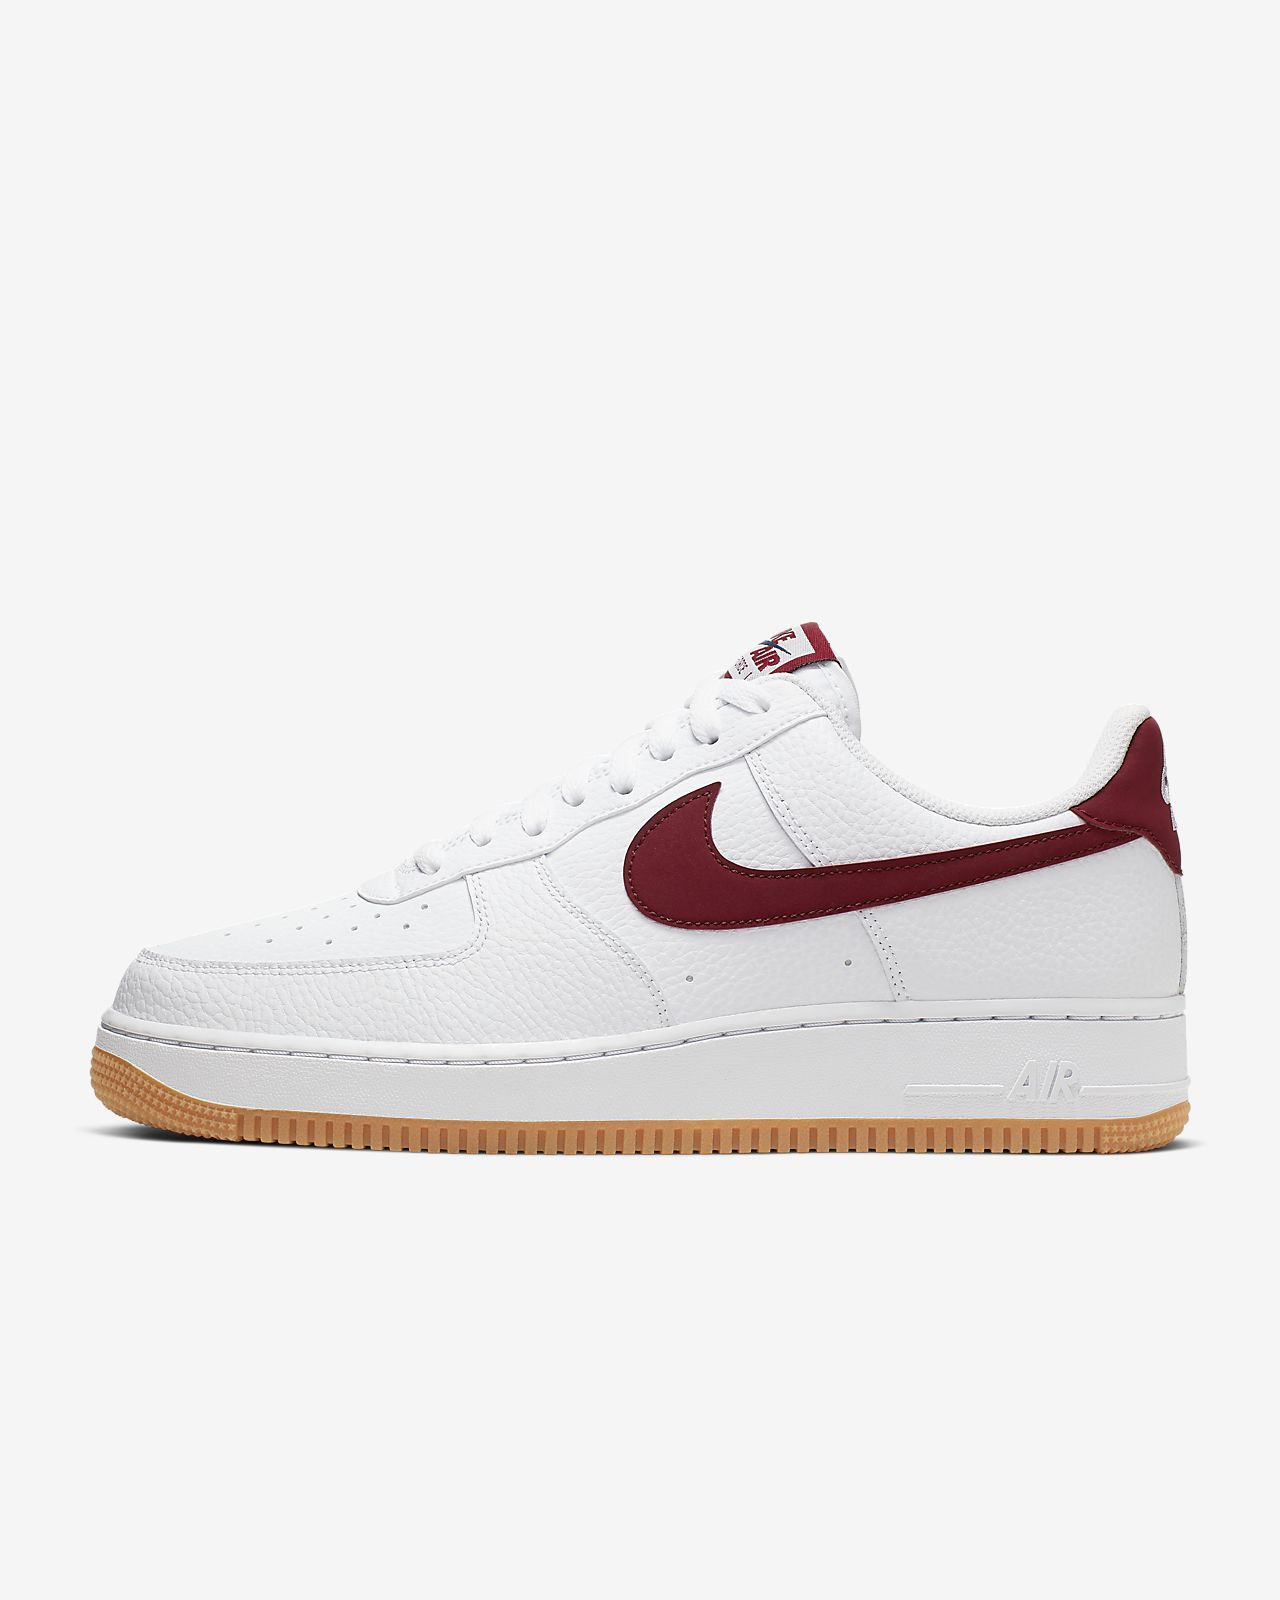 9ea5acd1 Nike Air Force 1 Men's Shoe